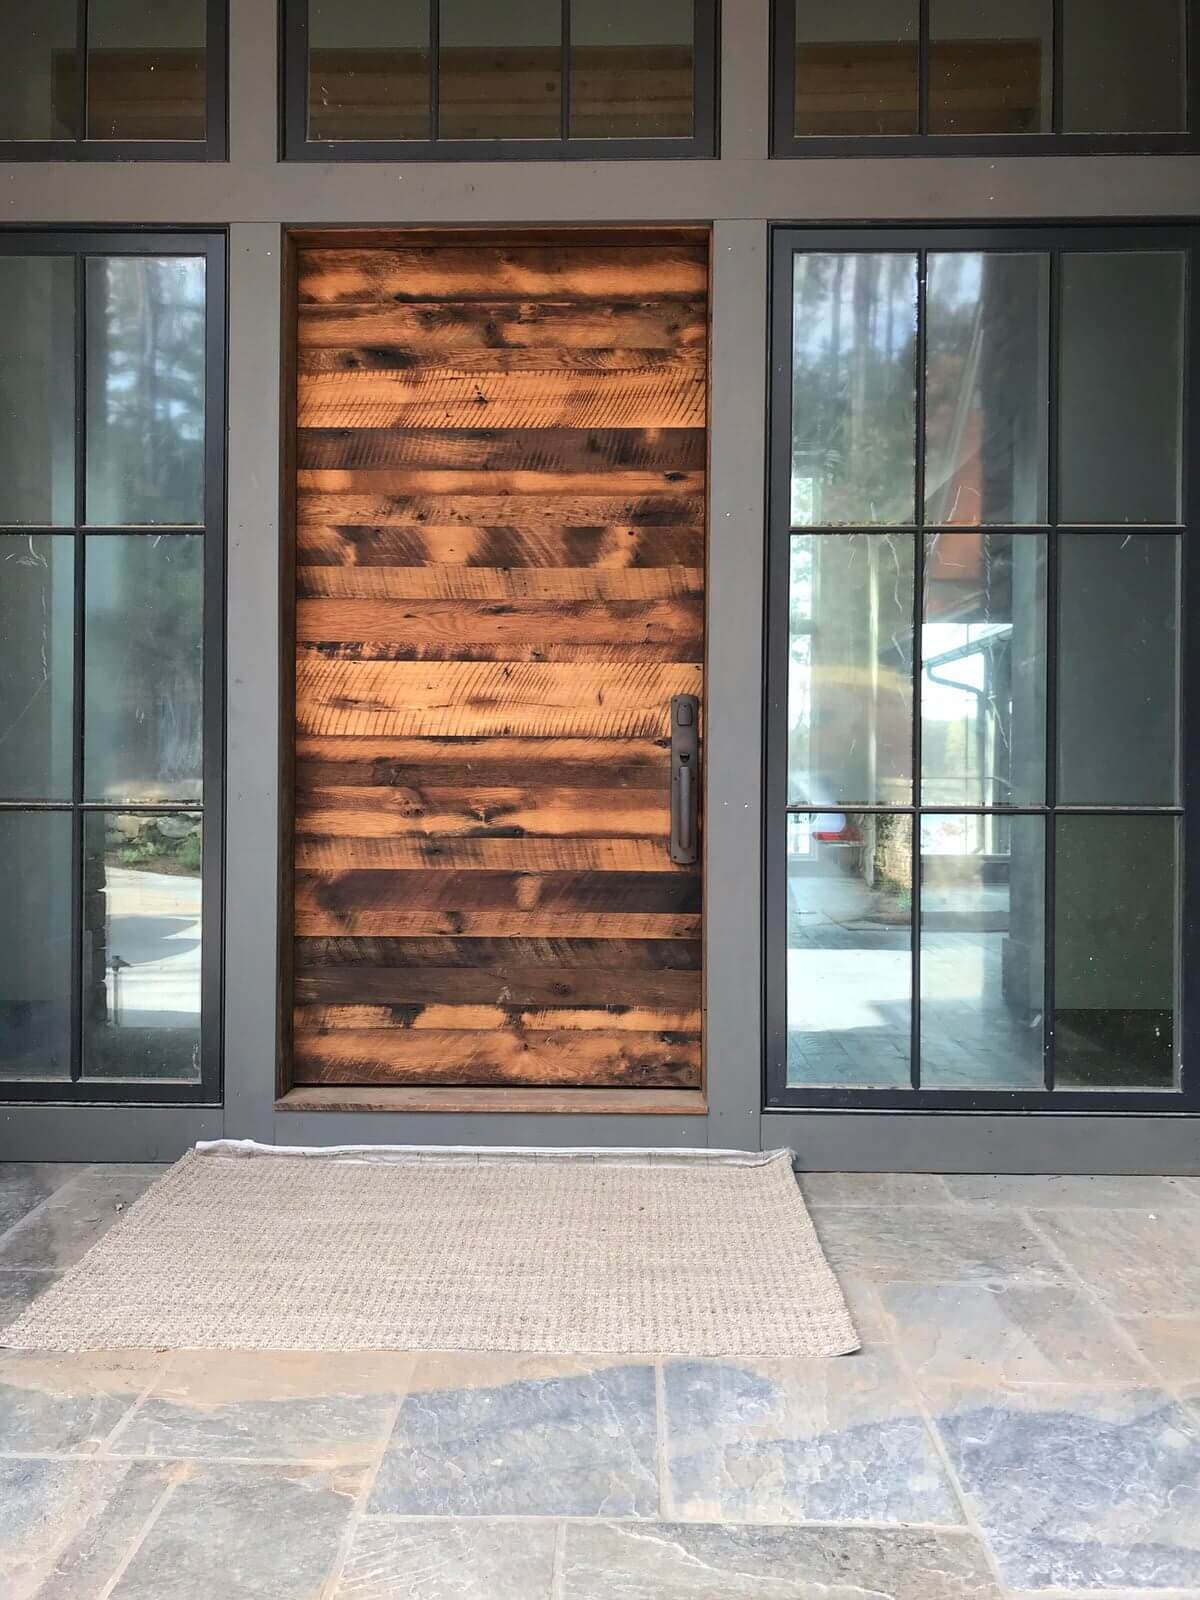 Stunning modern reclaimed wood front door engineered to perfection.